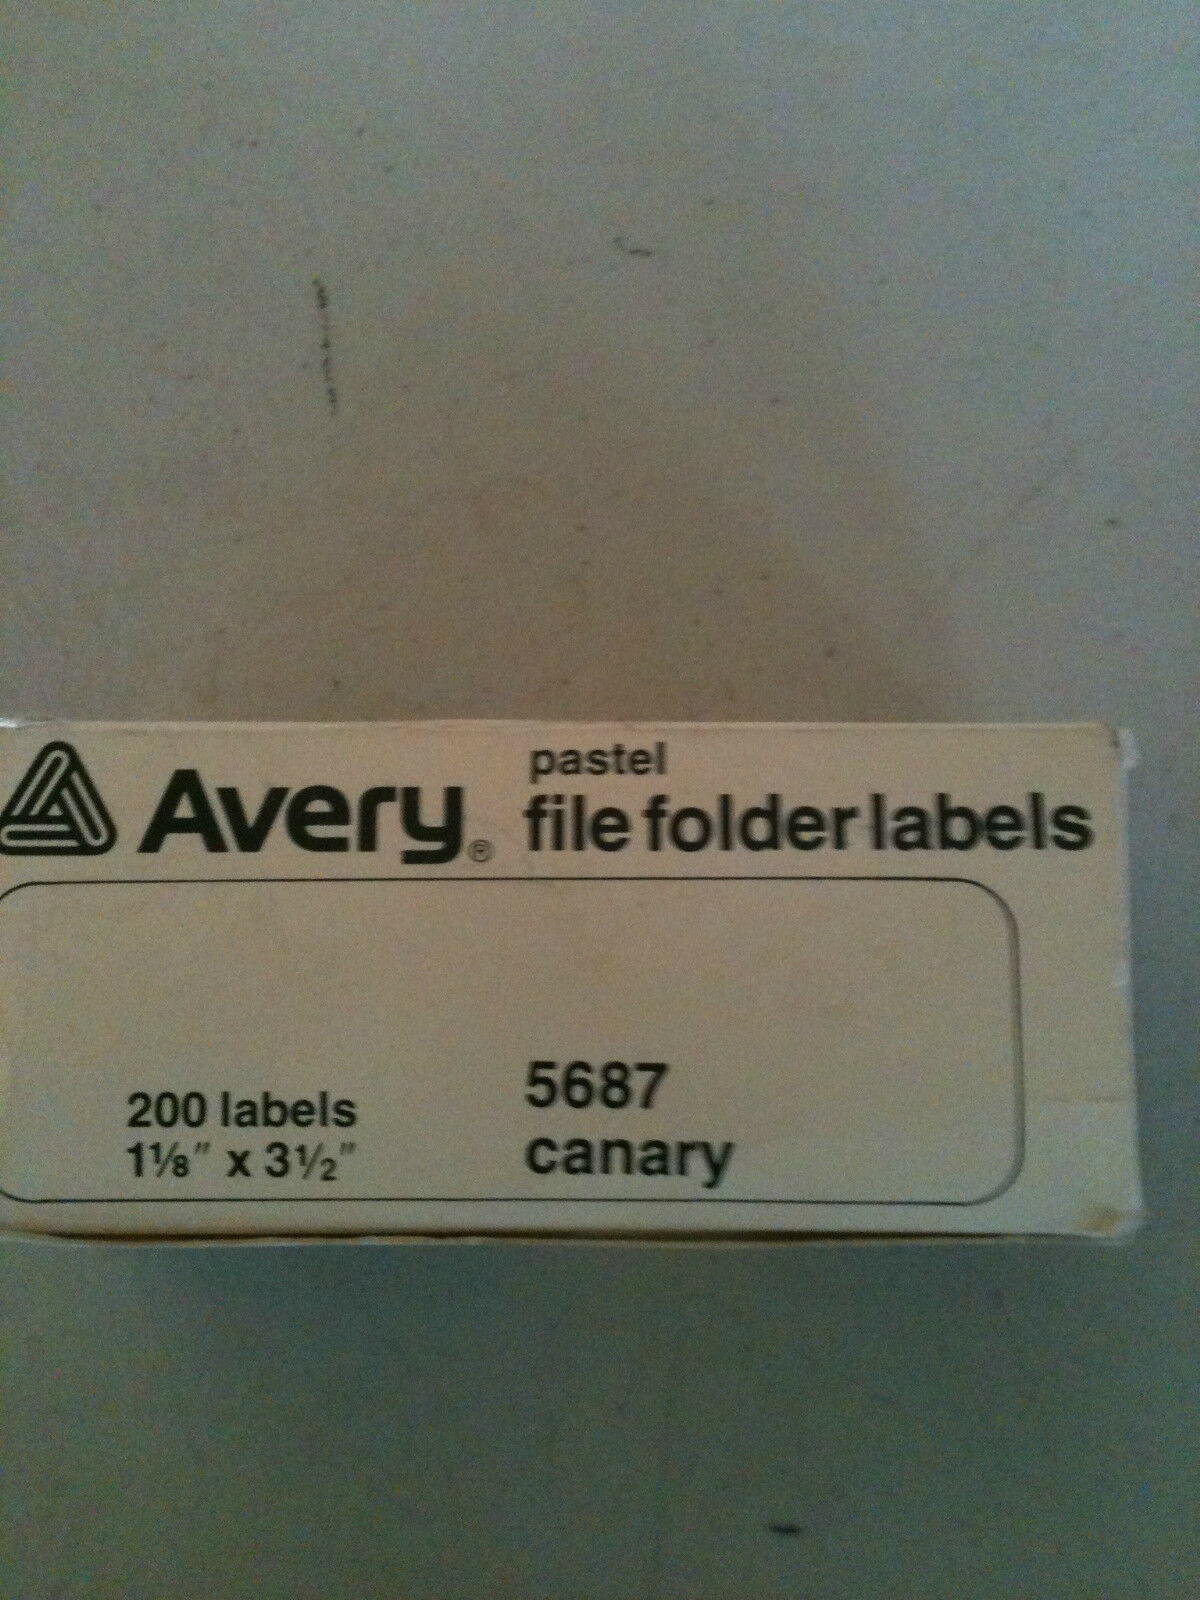 avery file folder labels 200 canary pastel color labels mp 5697 ebay